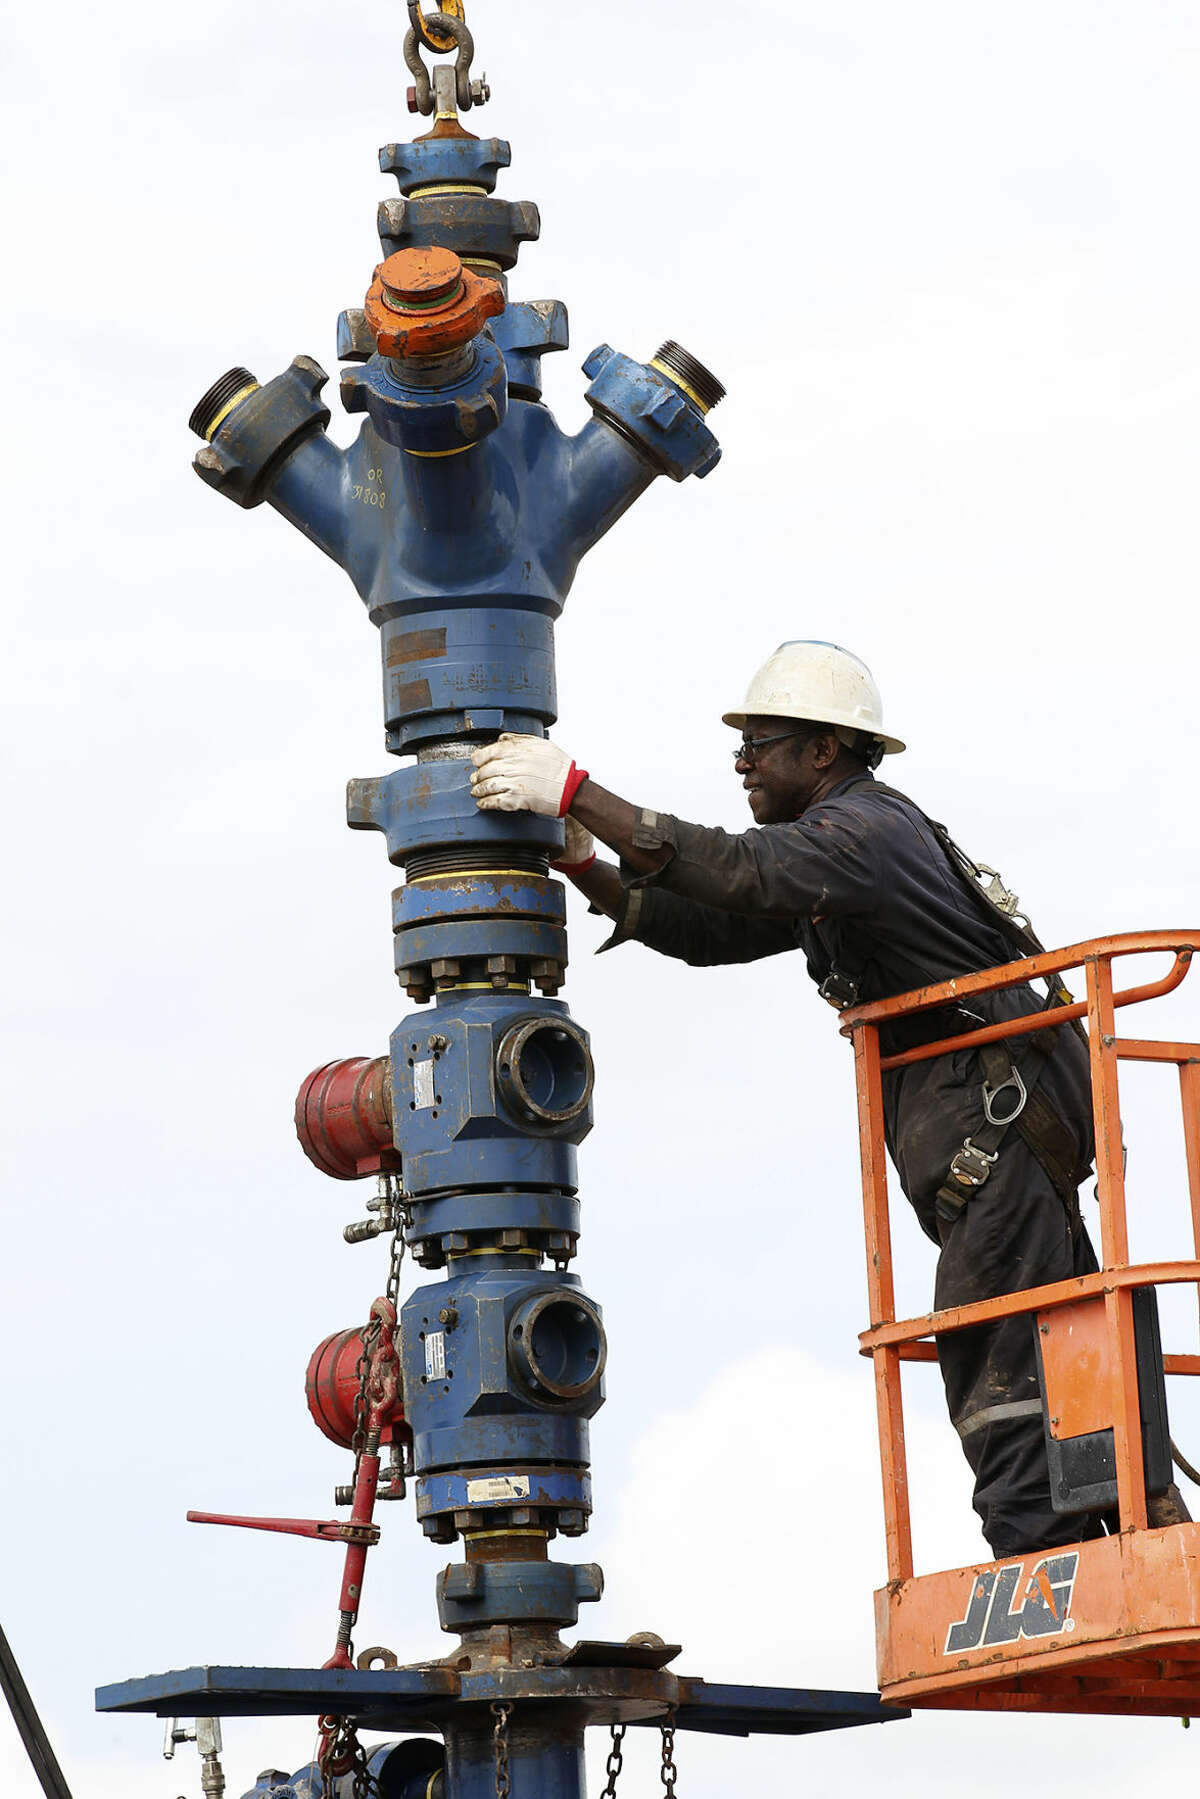 Nathen (cq) George removes a frac tree from a well on a ranch southwest of Ben Bolt, Texas, on Wednesday, Sept. 11, 2013. The well, located near the Jim Wells and Duvall County line, was drilled to a depth of over one mile.